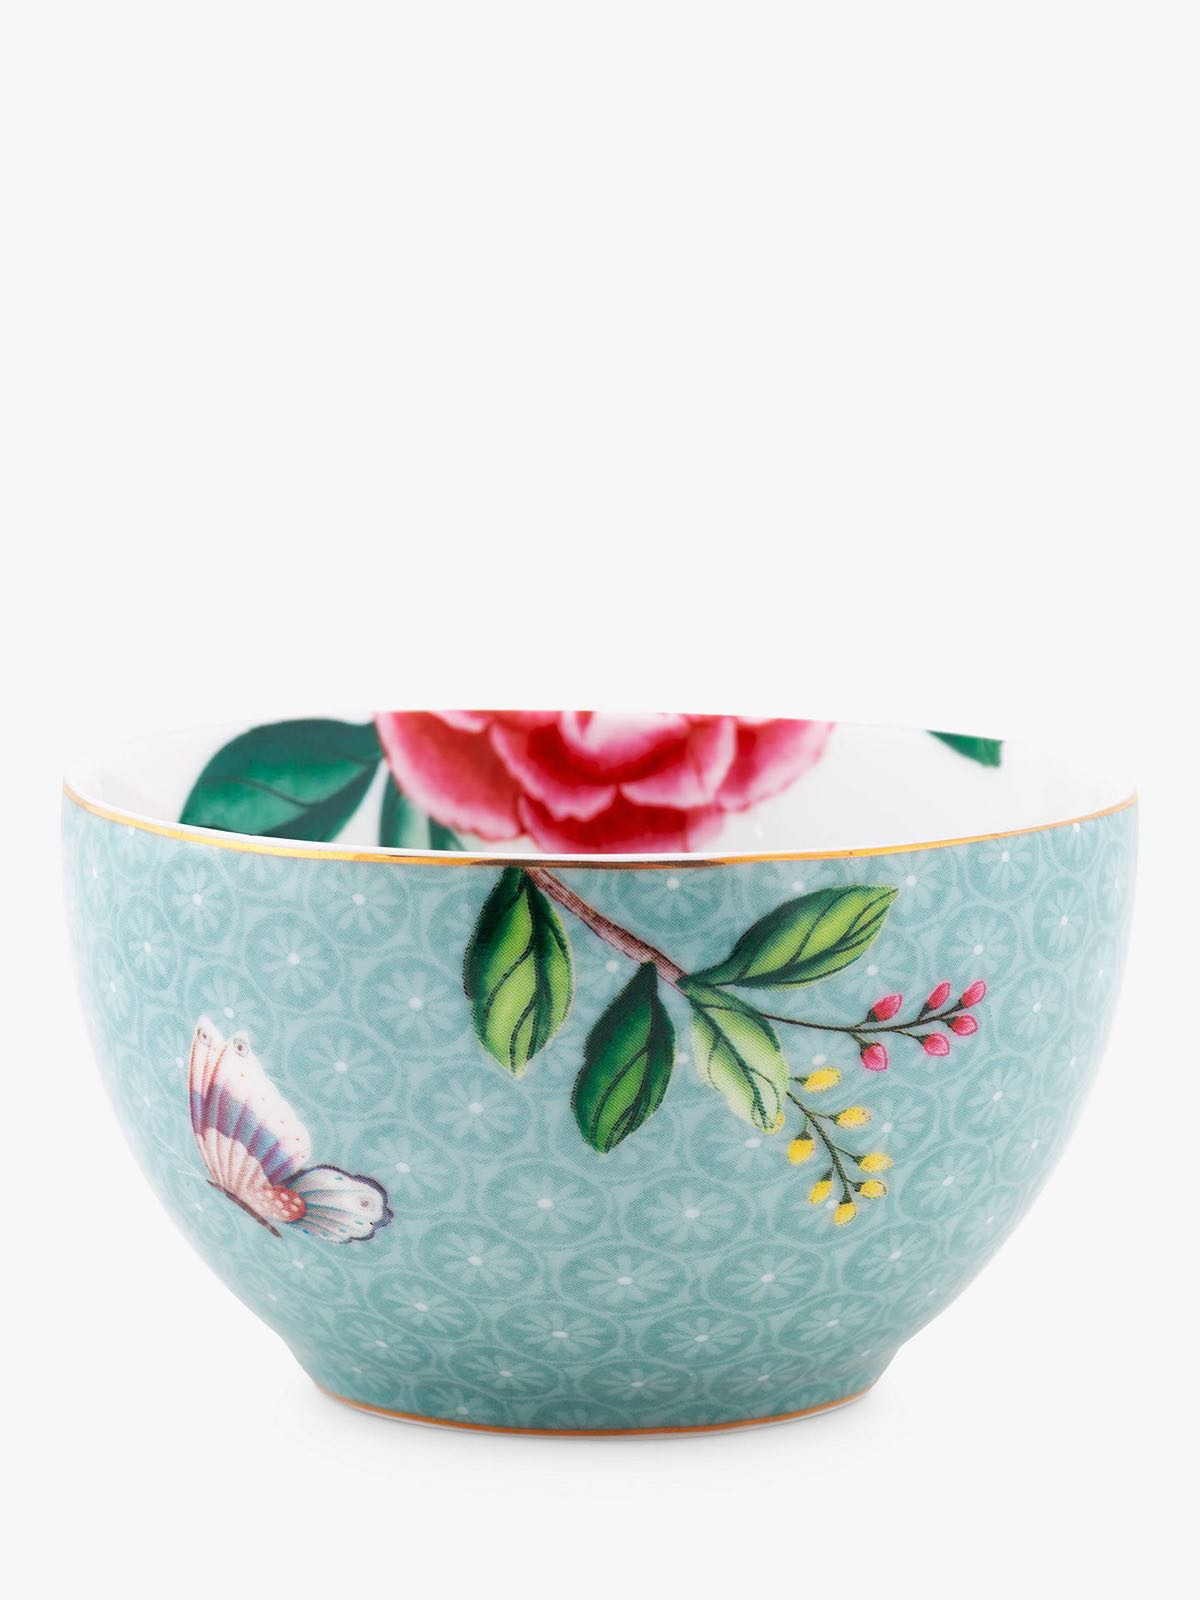 Pip studio blushing birds small  bowl 9.5cm